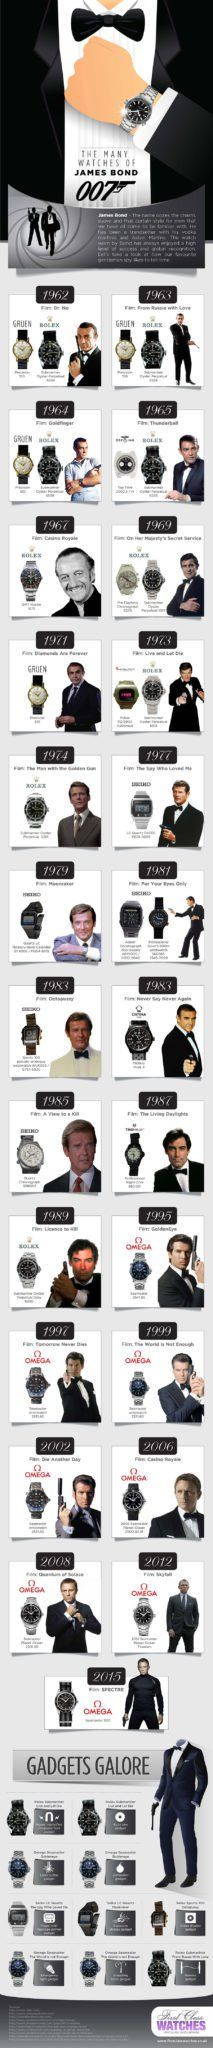 To celebrate the launch of the new James Bond Spectre film we are taking a trip down memory lane. Over the years the fashions of James Bond may have changed but the gadgets and sophistication remain very much in timing with our favourite secret agent. Montre James Bond, James Bond Watch, New James Bond, James Bond Style, Der Gentleman, Gentleman Style, Luxury Watches, Rolex Watches, Estilo James Bond